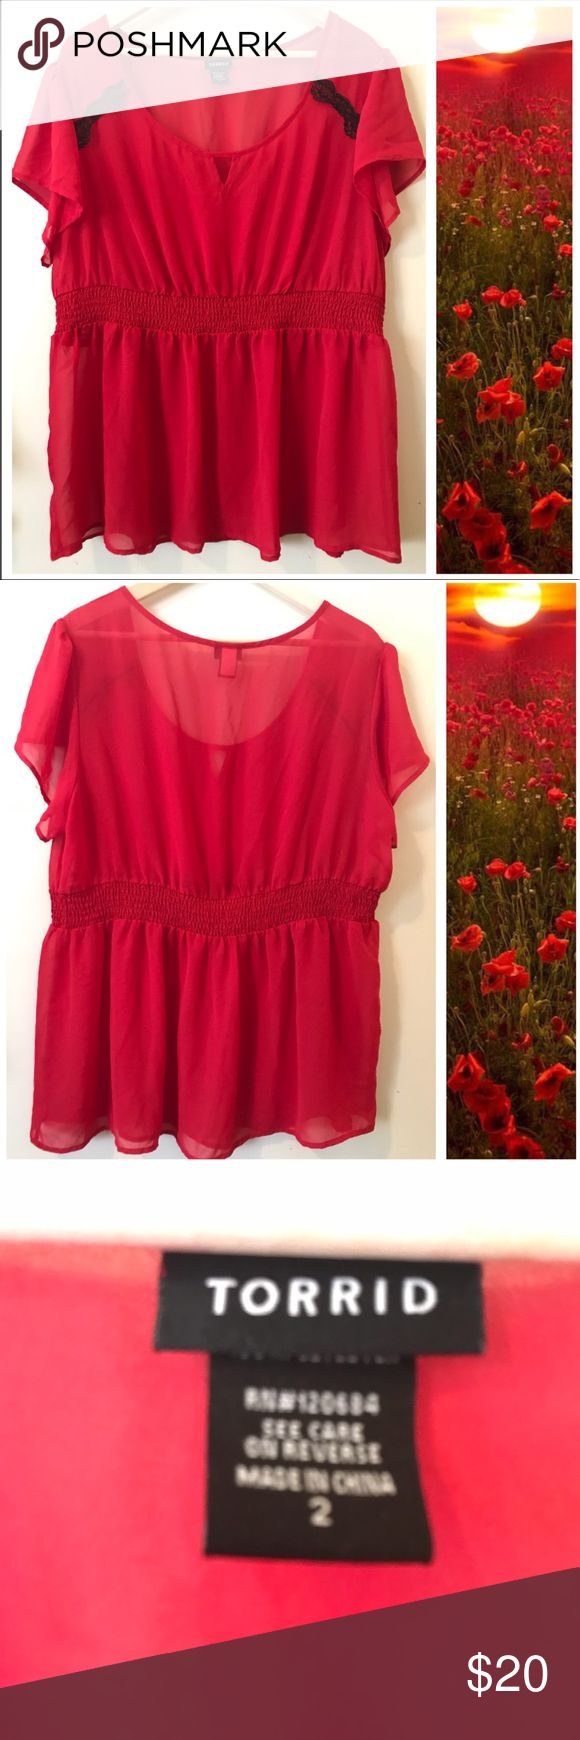 """Just In 🌹Torrid Red Empire Baby doll Top 🌹 Preloved in great conditions, Torrid sheer red top with flutter cap sleeves, peek hole in the neckline & Black Lace On shoulders. Elastic around waist. 🌹Approx Length it's 28"""" & 22""""Bust Laying Flat. It's size 2 on Torrid, means it's 18/20.  Super cute and sexy top. 🌹 torrid Tops Blouses"""